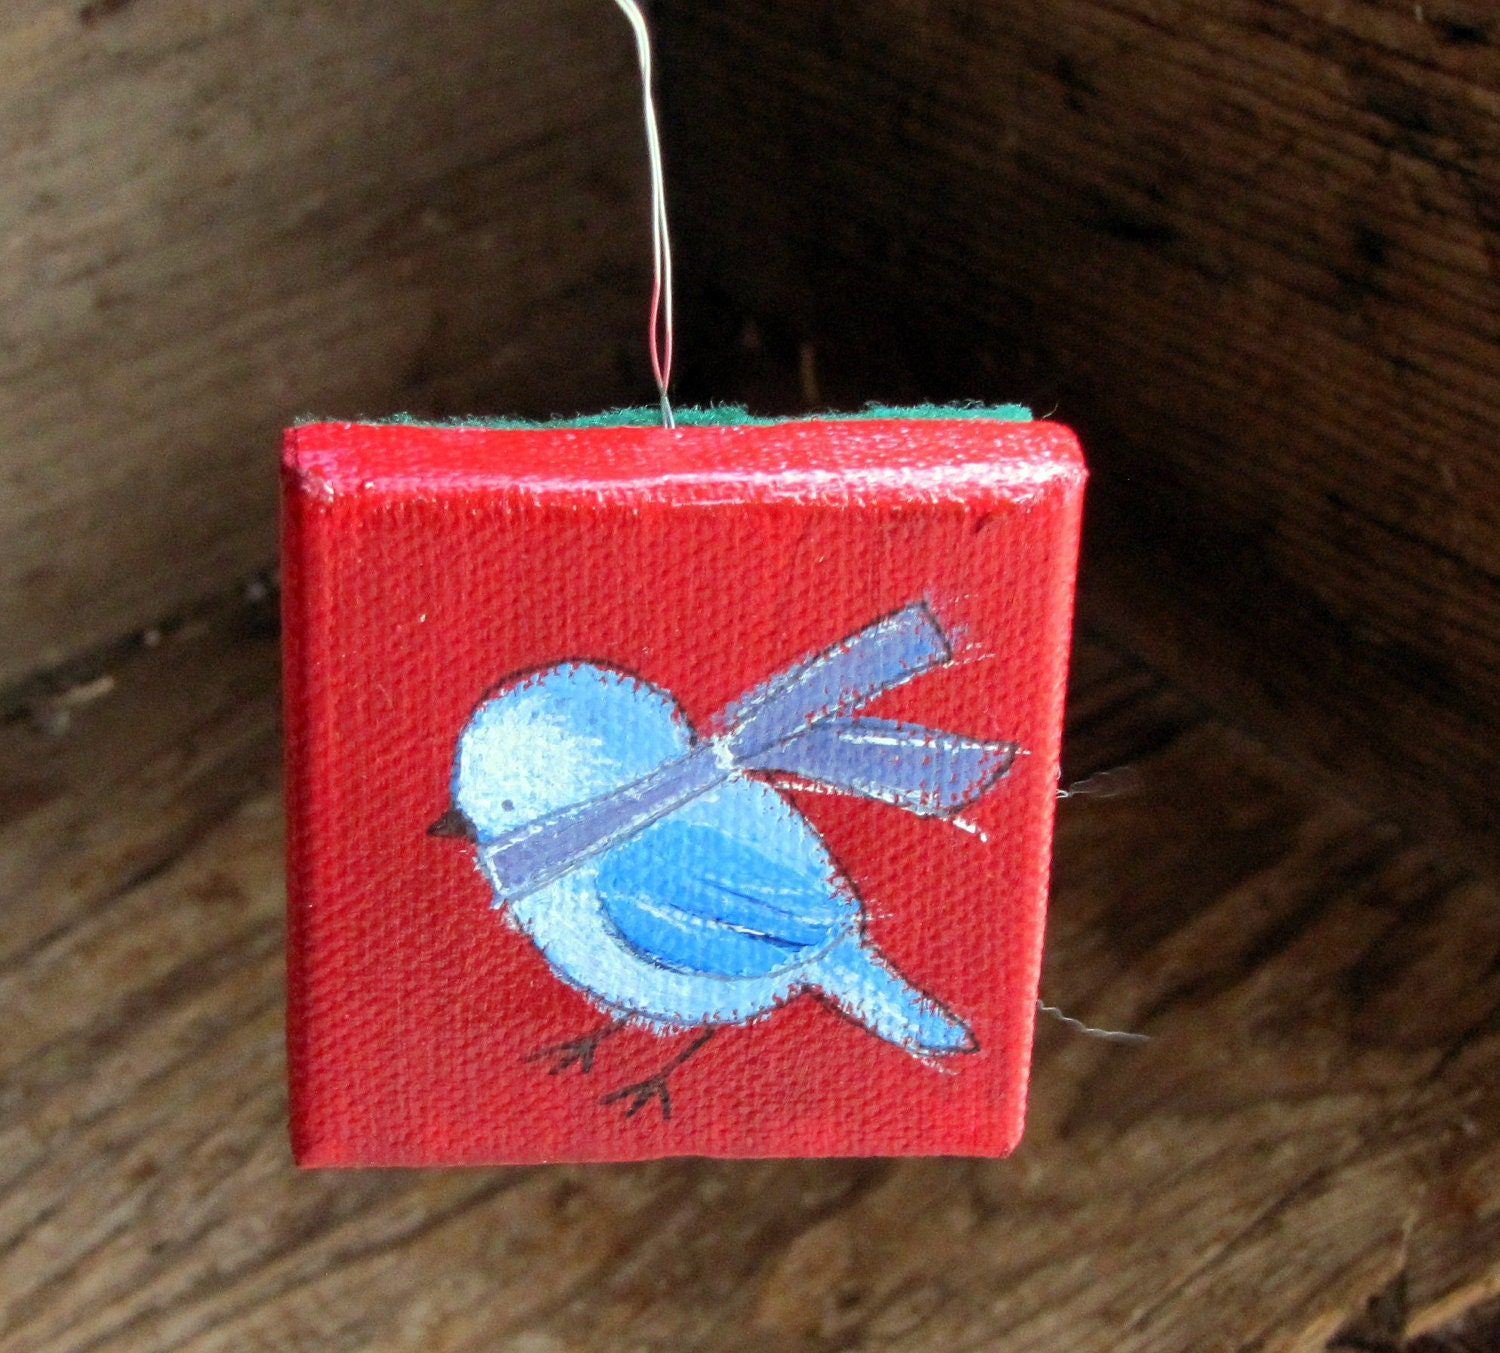 Original Art Mini Canvas Christmas Ornament, Whimsical Painting, Little Blue Bird - andralynn